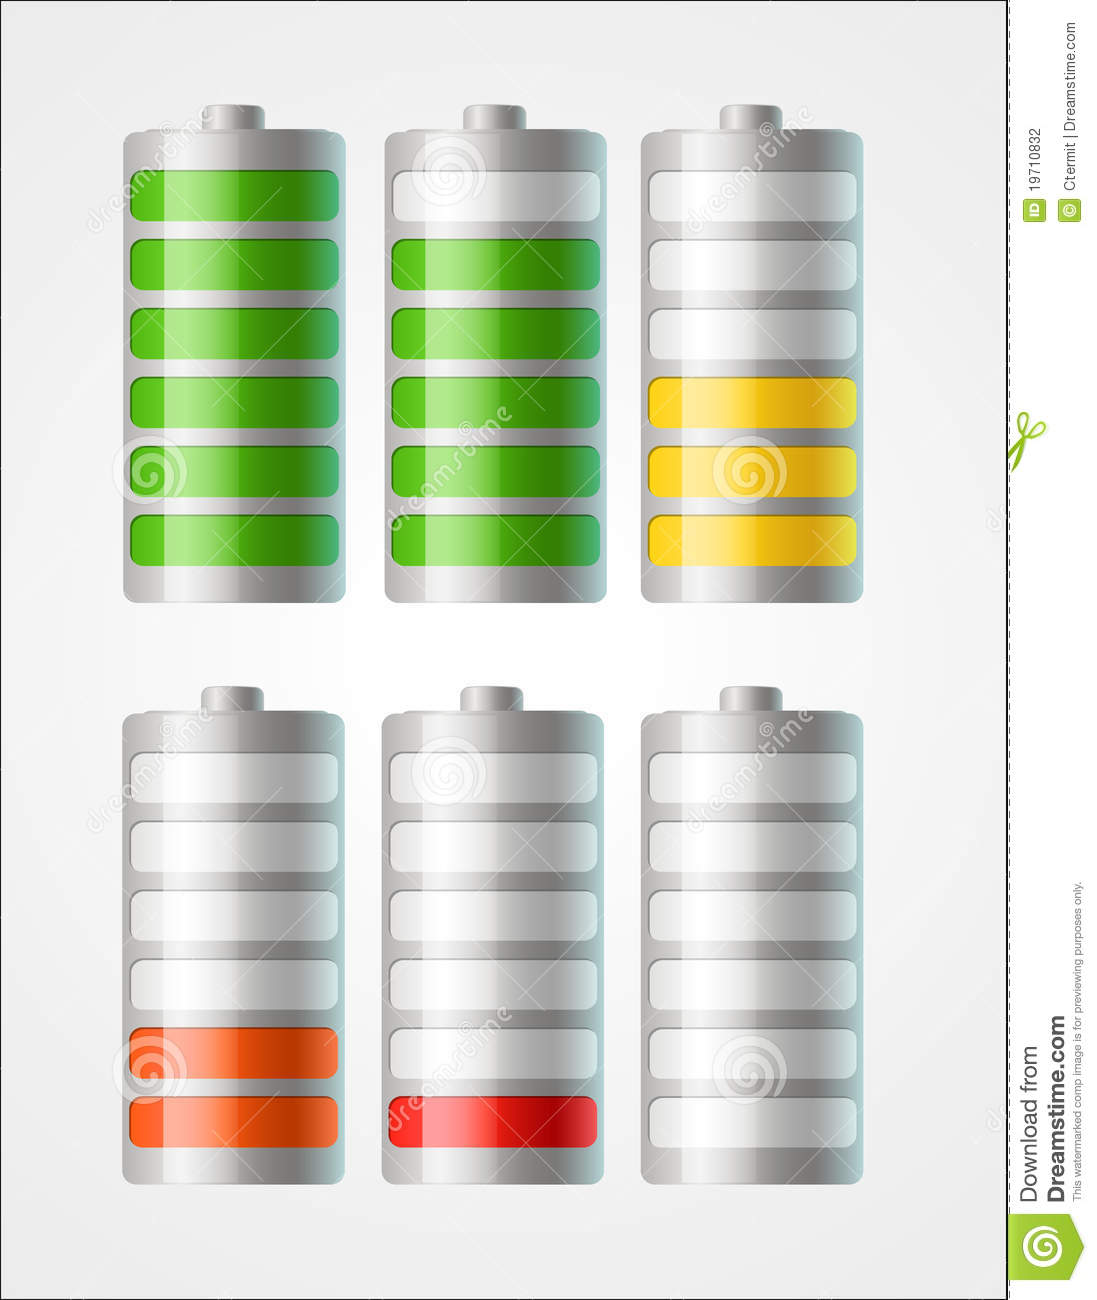 Windows 8 1 Set Battery Charge Level : Vector battery icons with level of charging stock